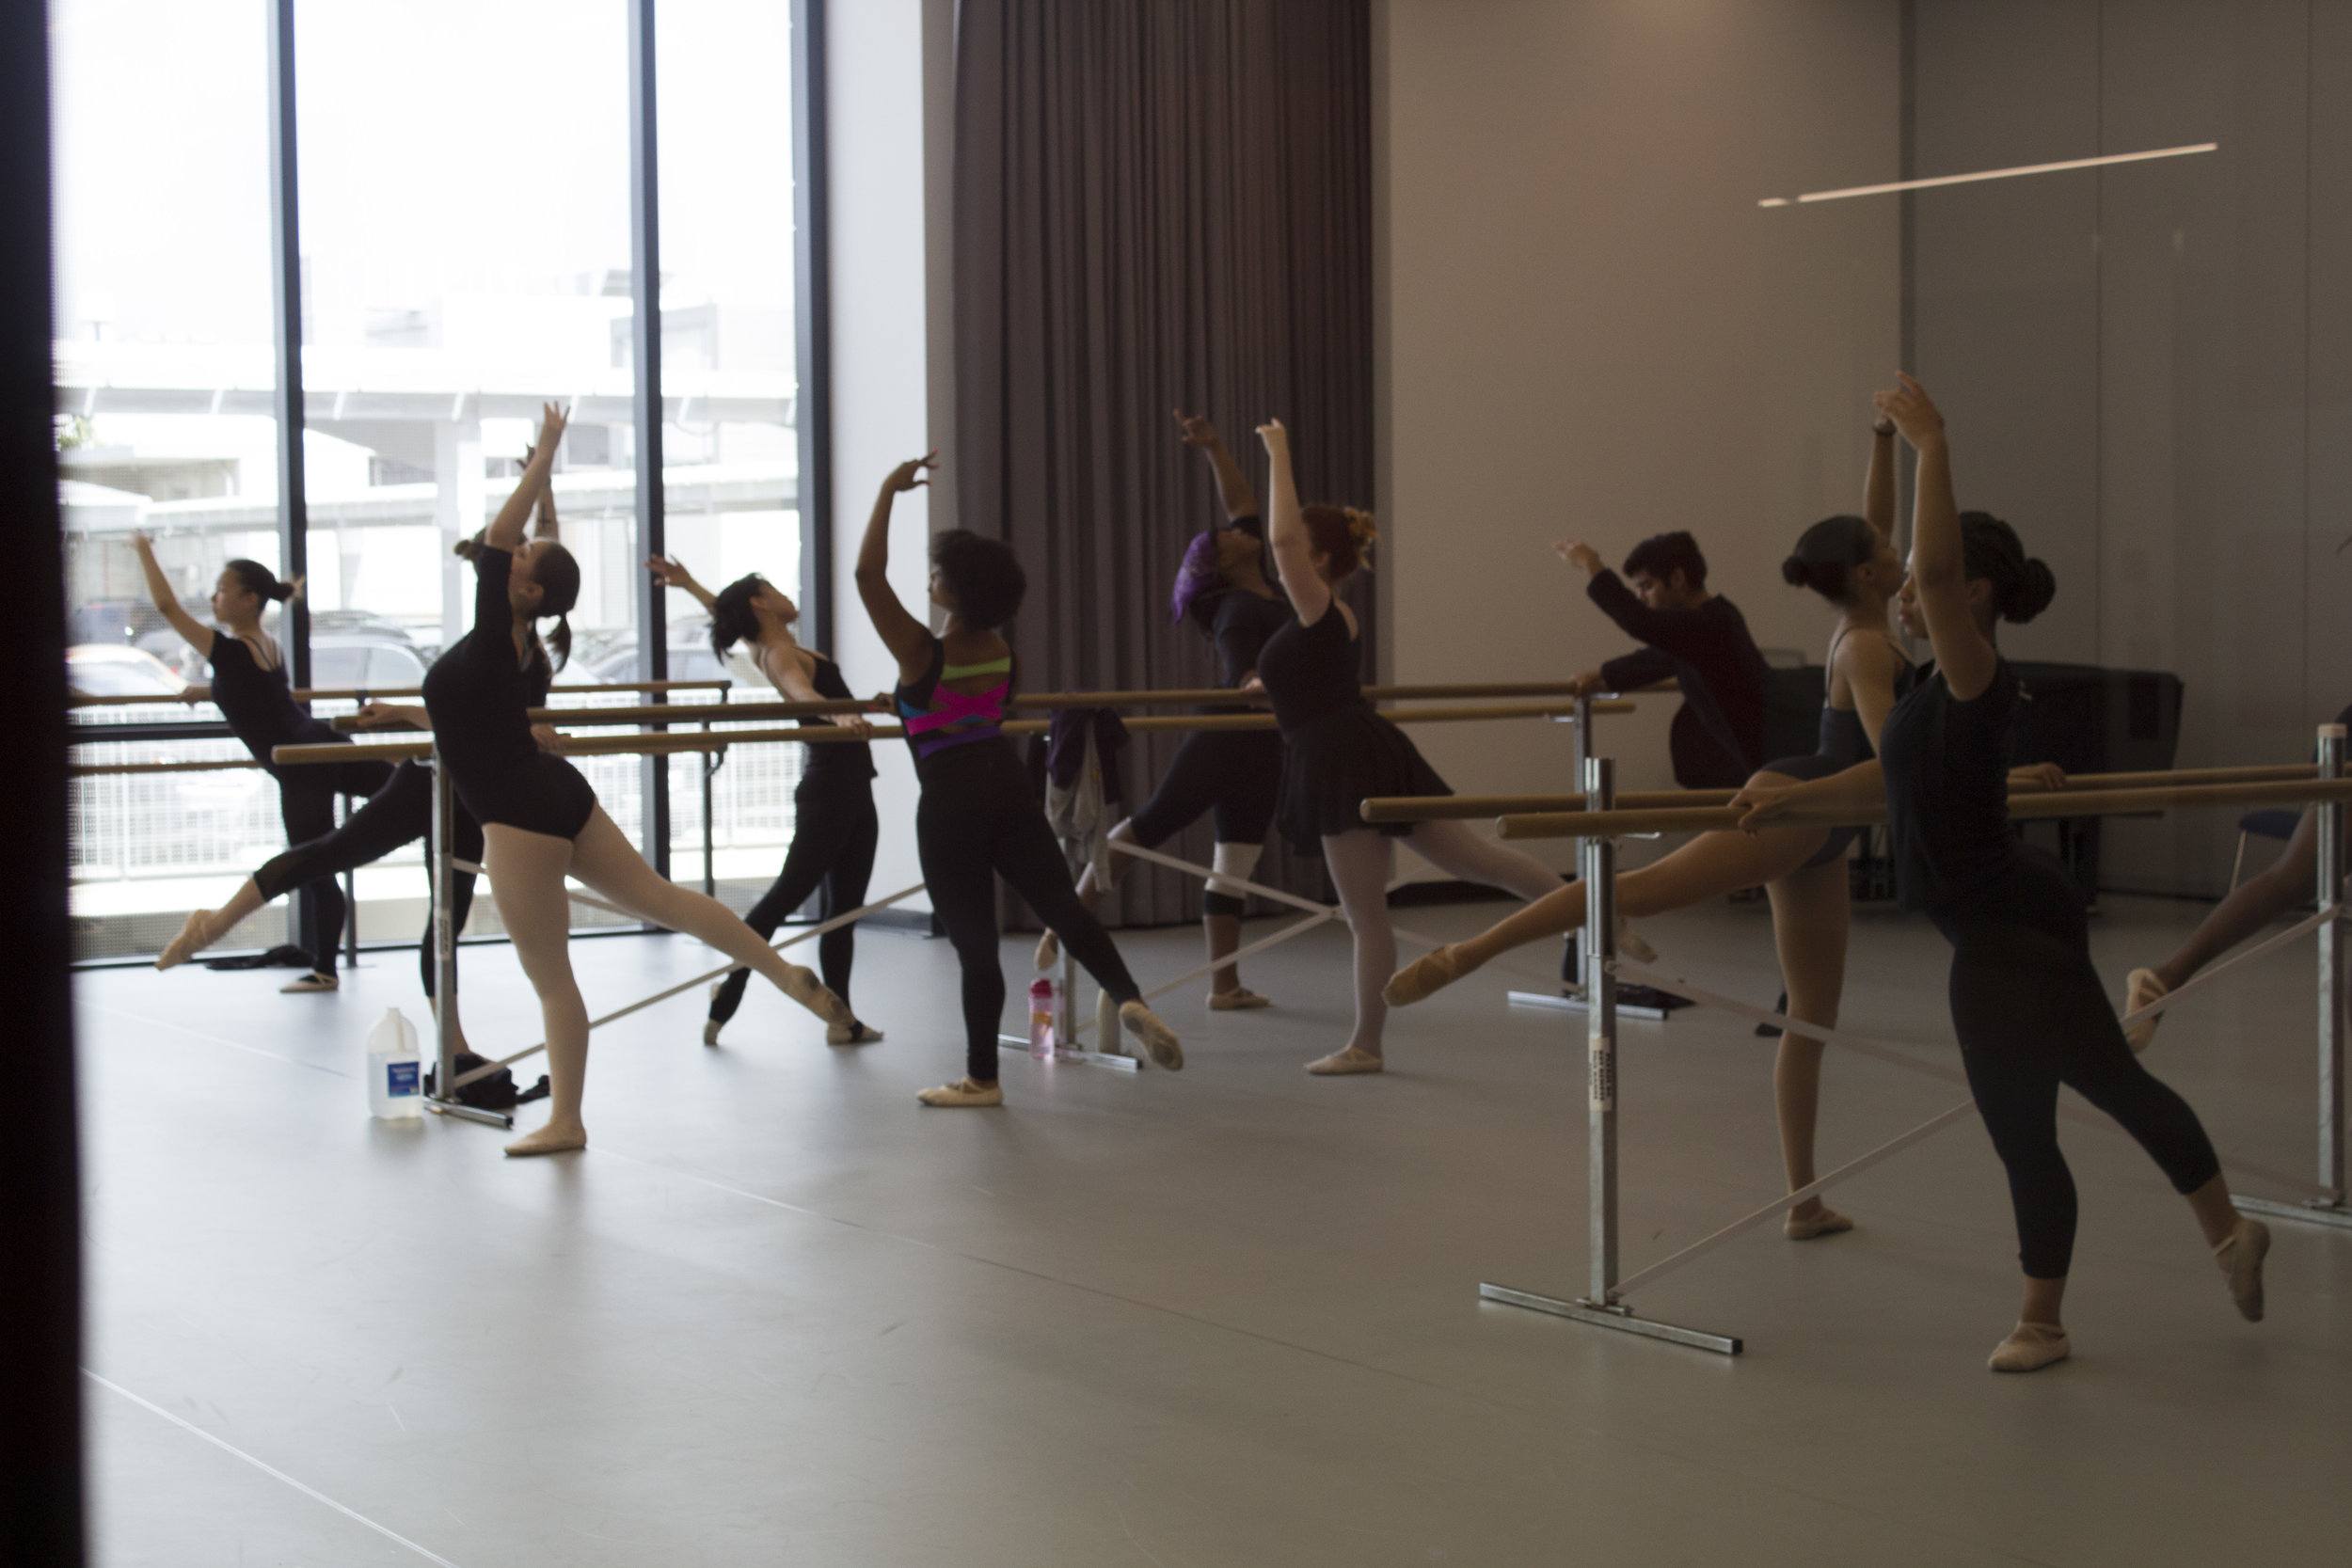 Dance class on the 3rd floor of the all new Core Performance Center building. At Santa Monica College, Calif. Photo taken on April 3, 2017. Emeline Moquillon, staff photographer